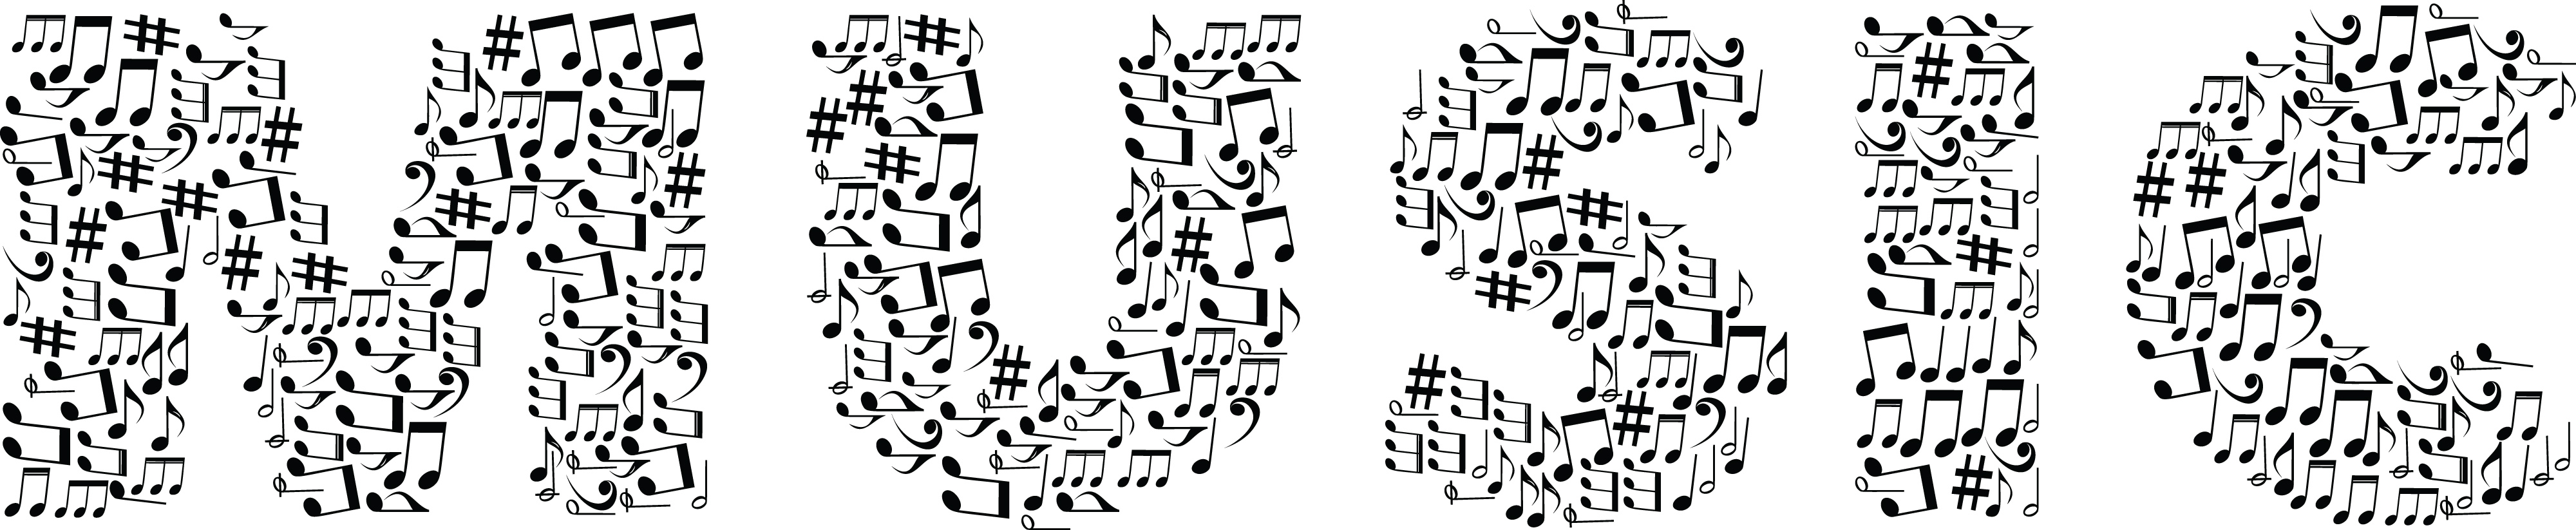 musical notes word